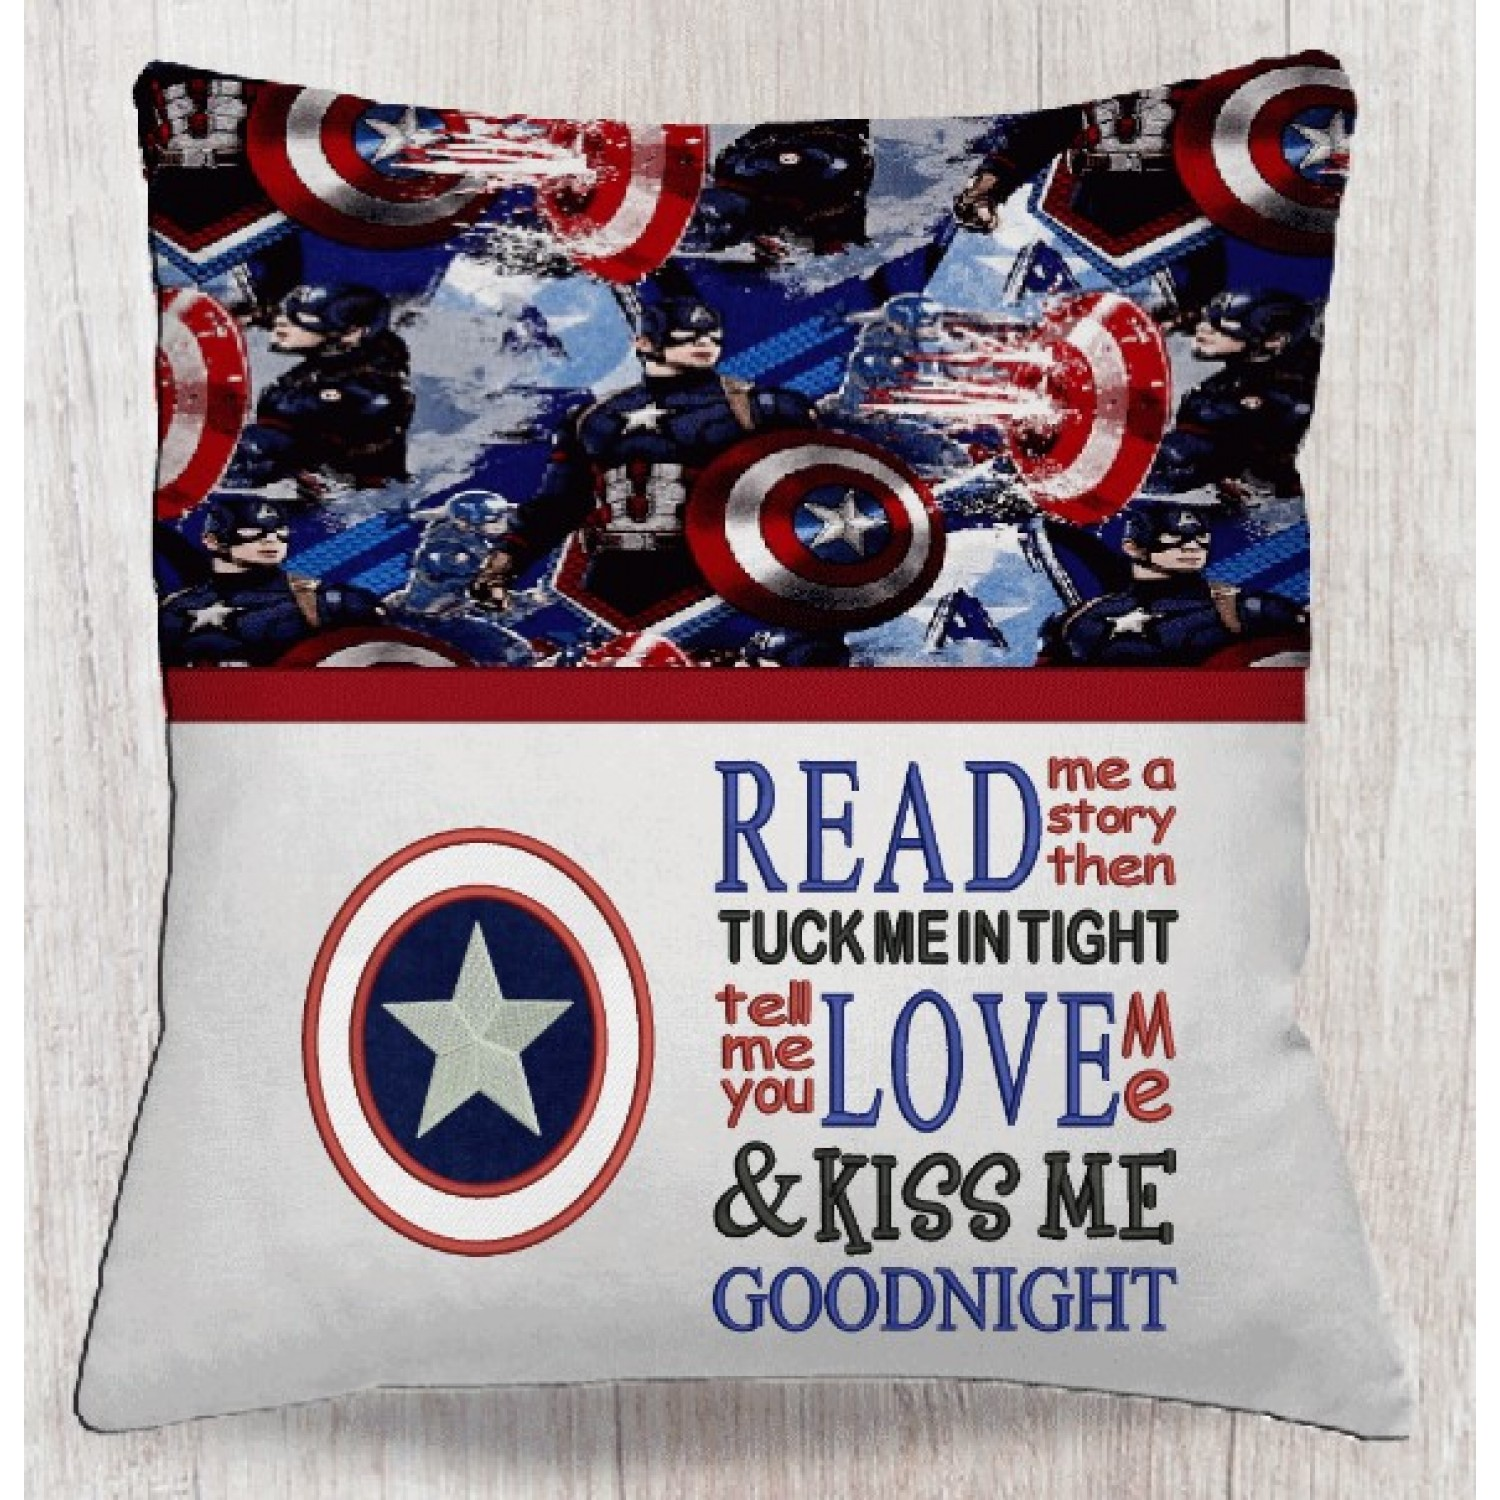 captain america with read me a story